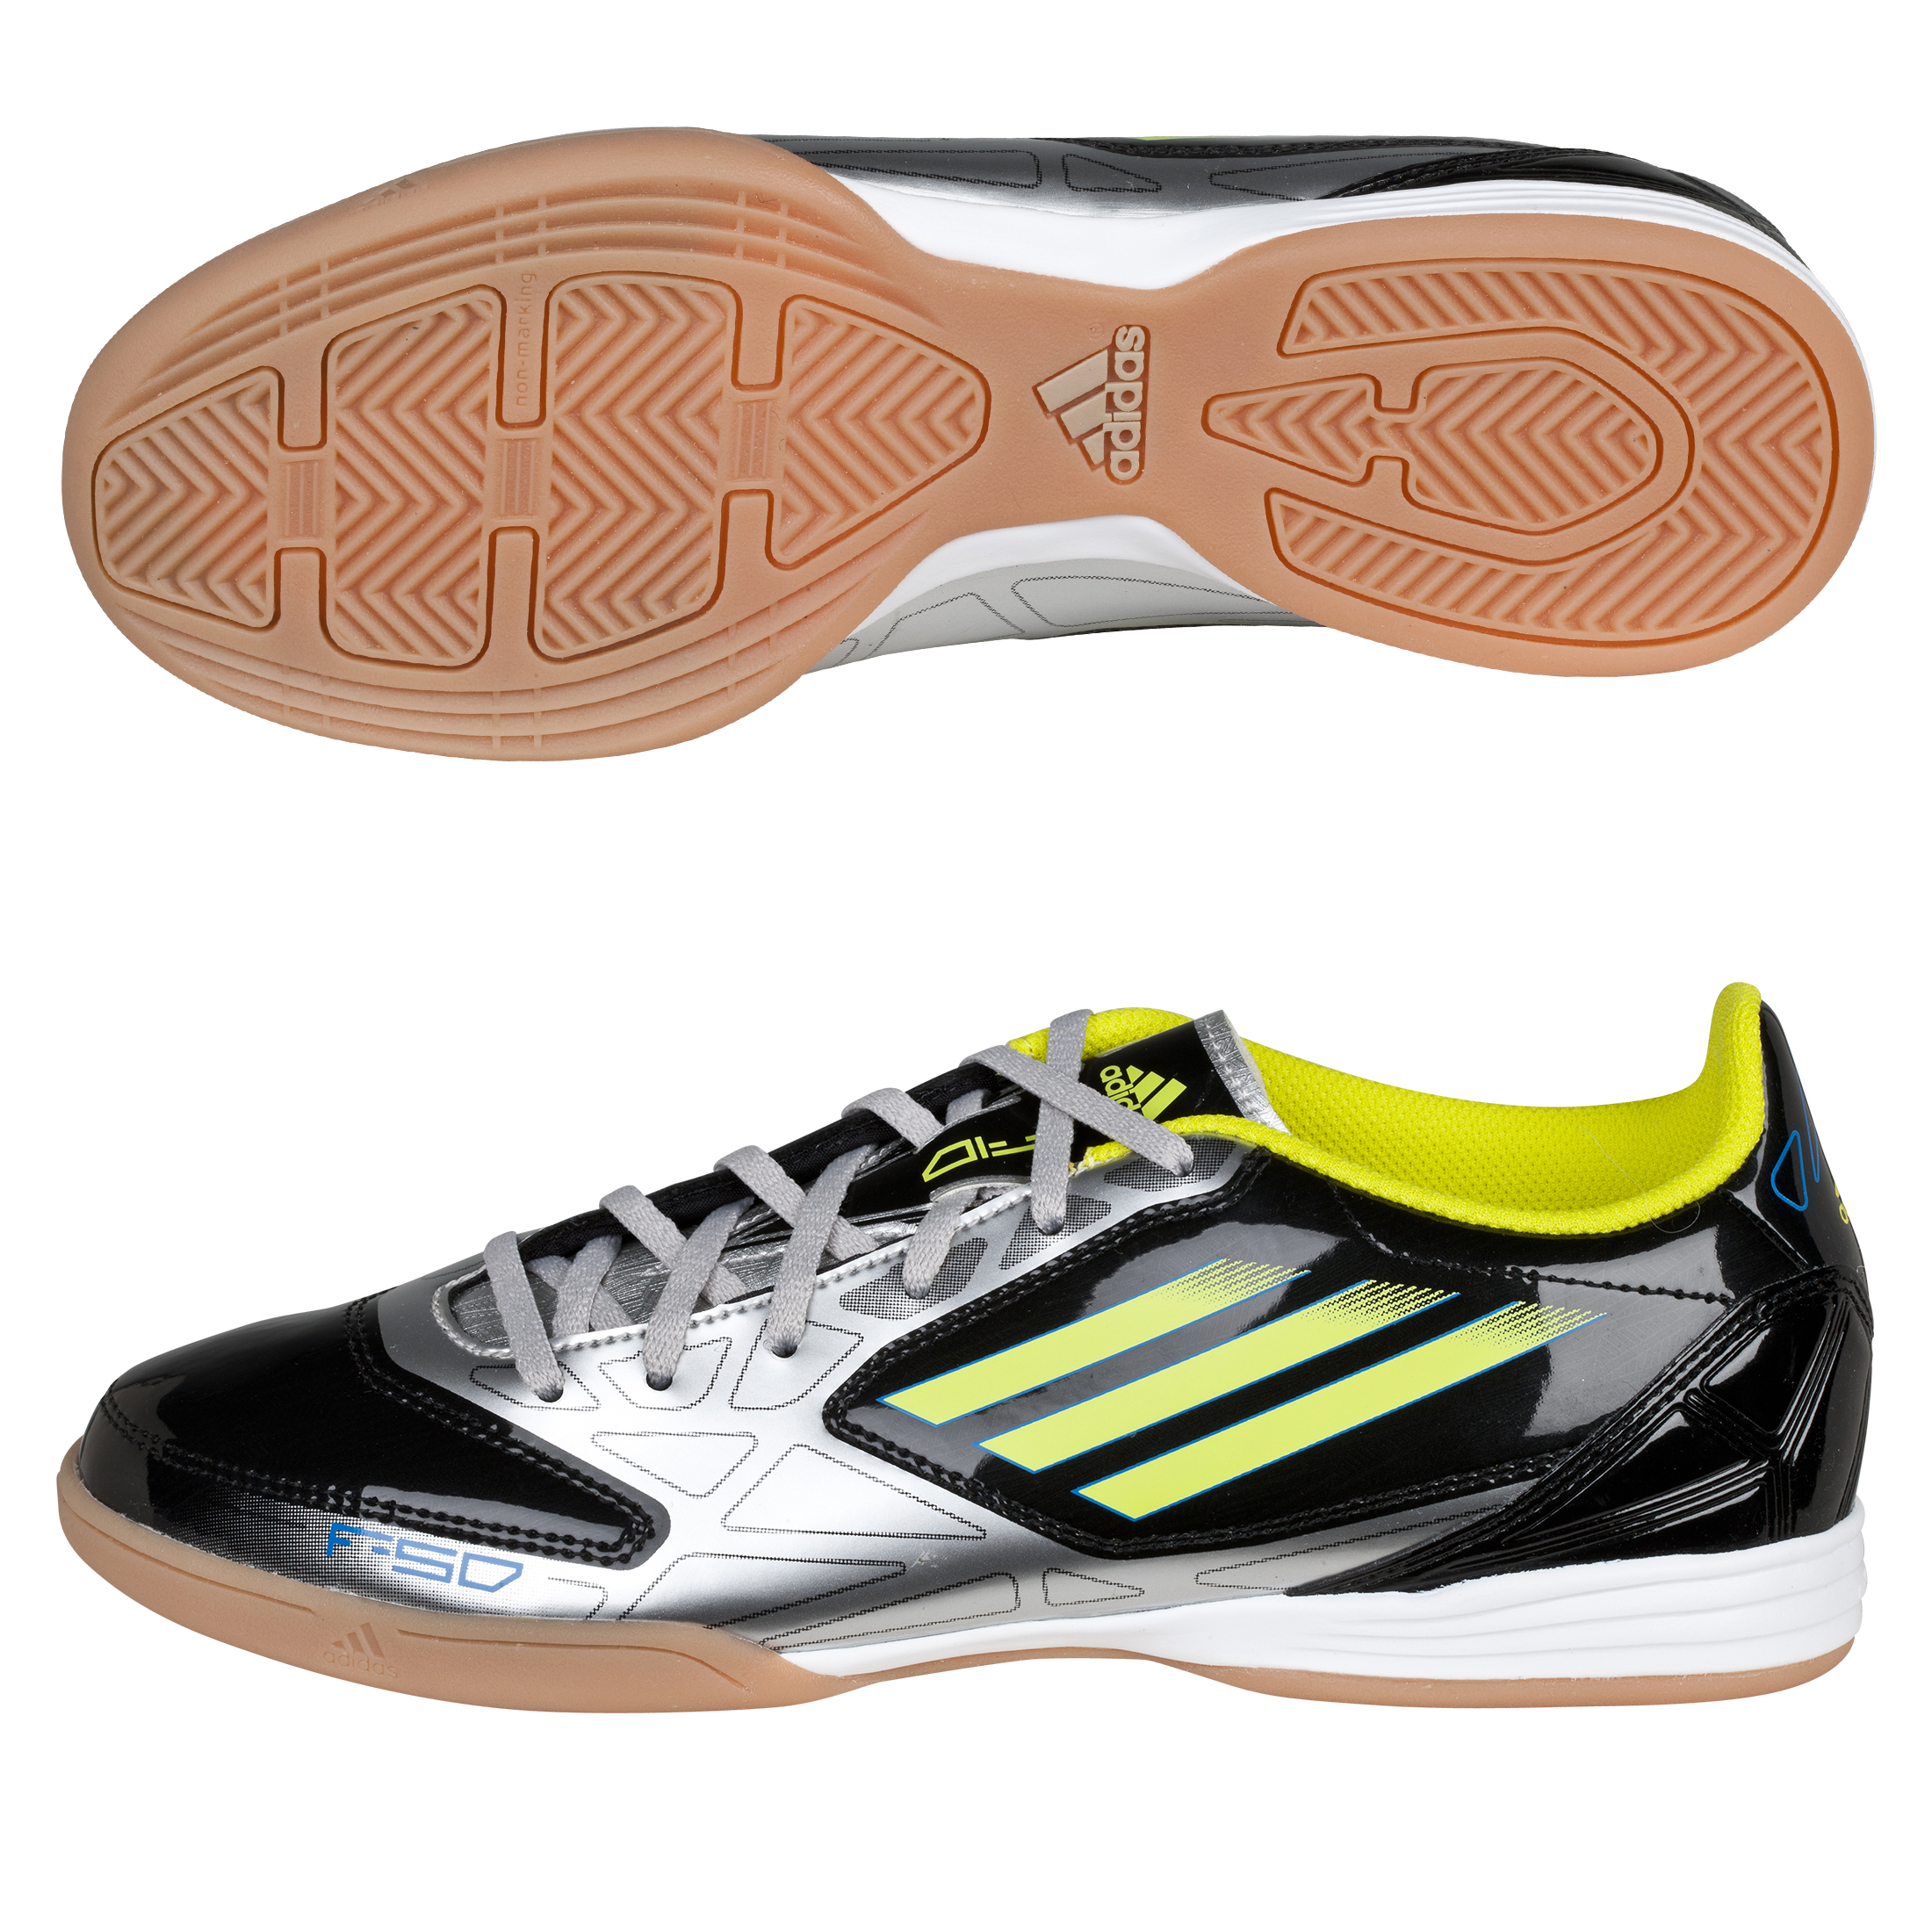 Adidas F10 Indoor Trainers - Black/Lab Lime/Metallic Silver